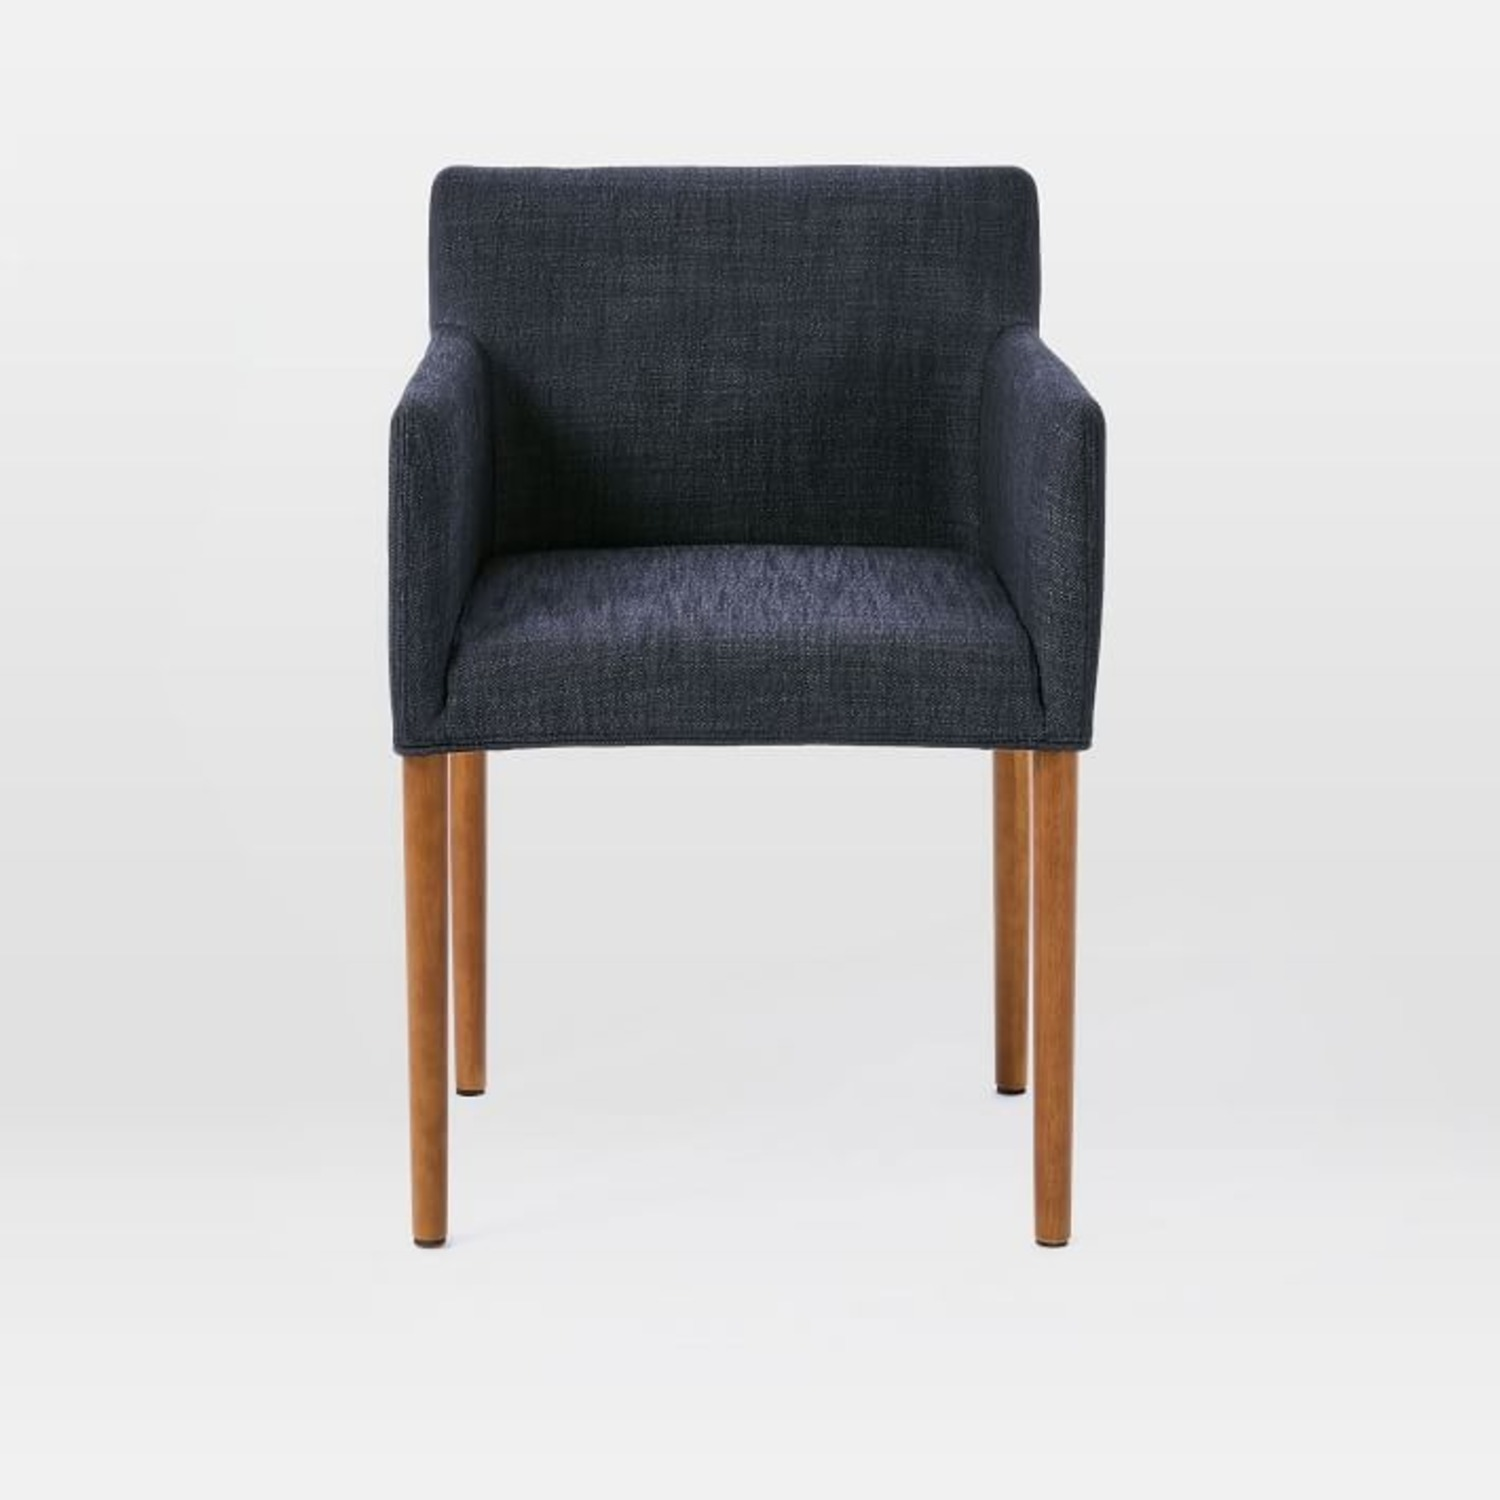 West Elm Ellis Upholstered Arm Chair - image-2